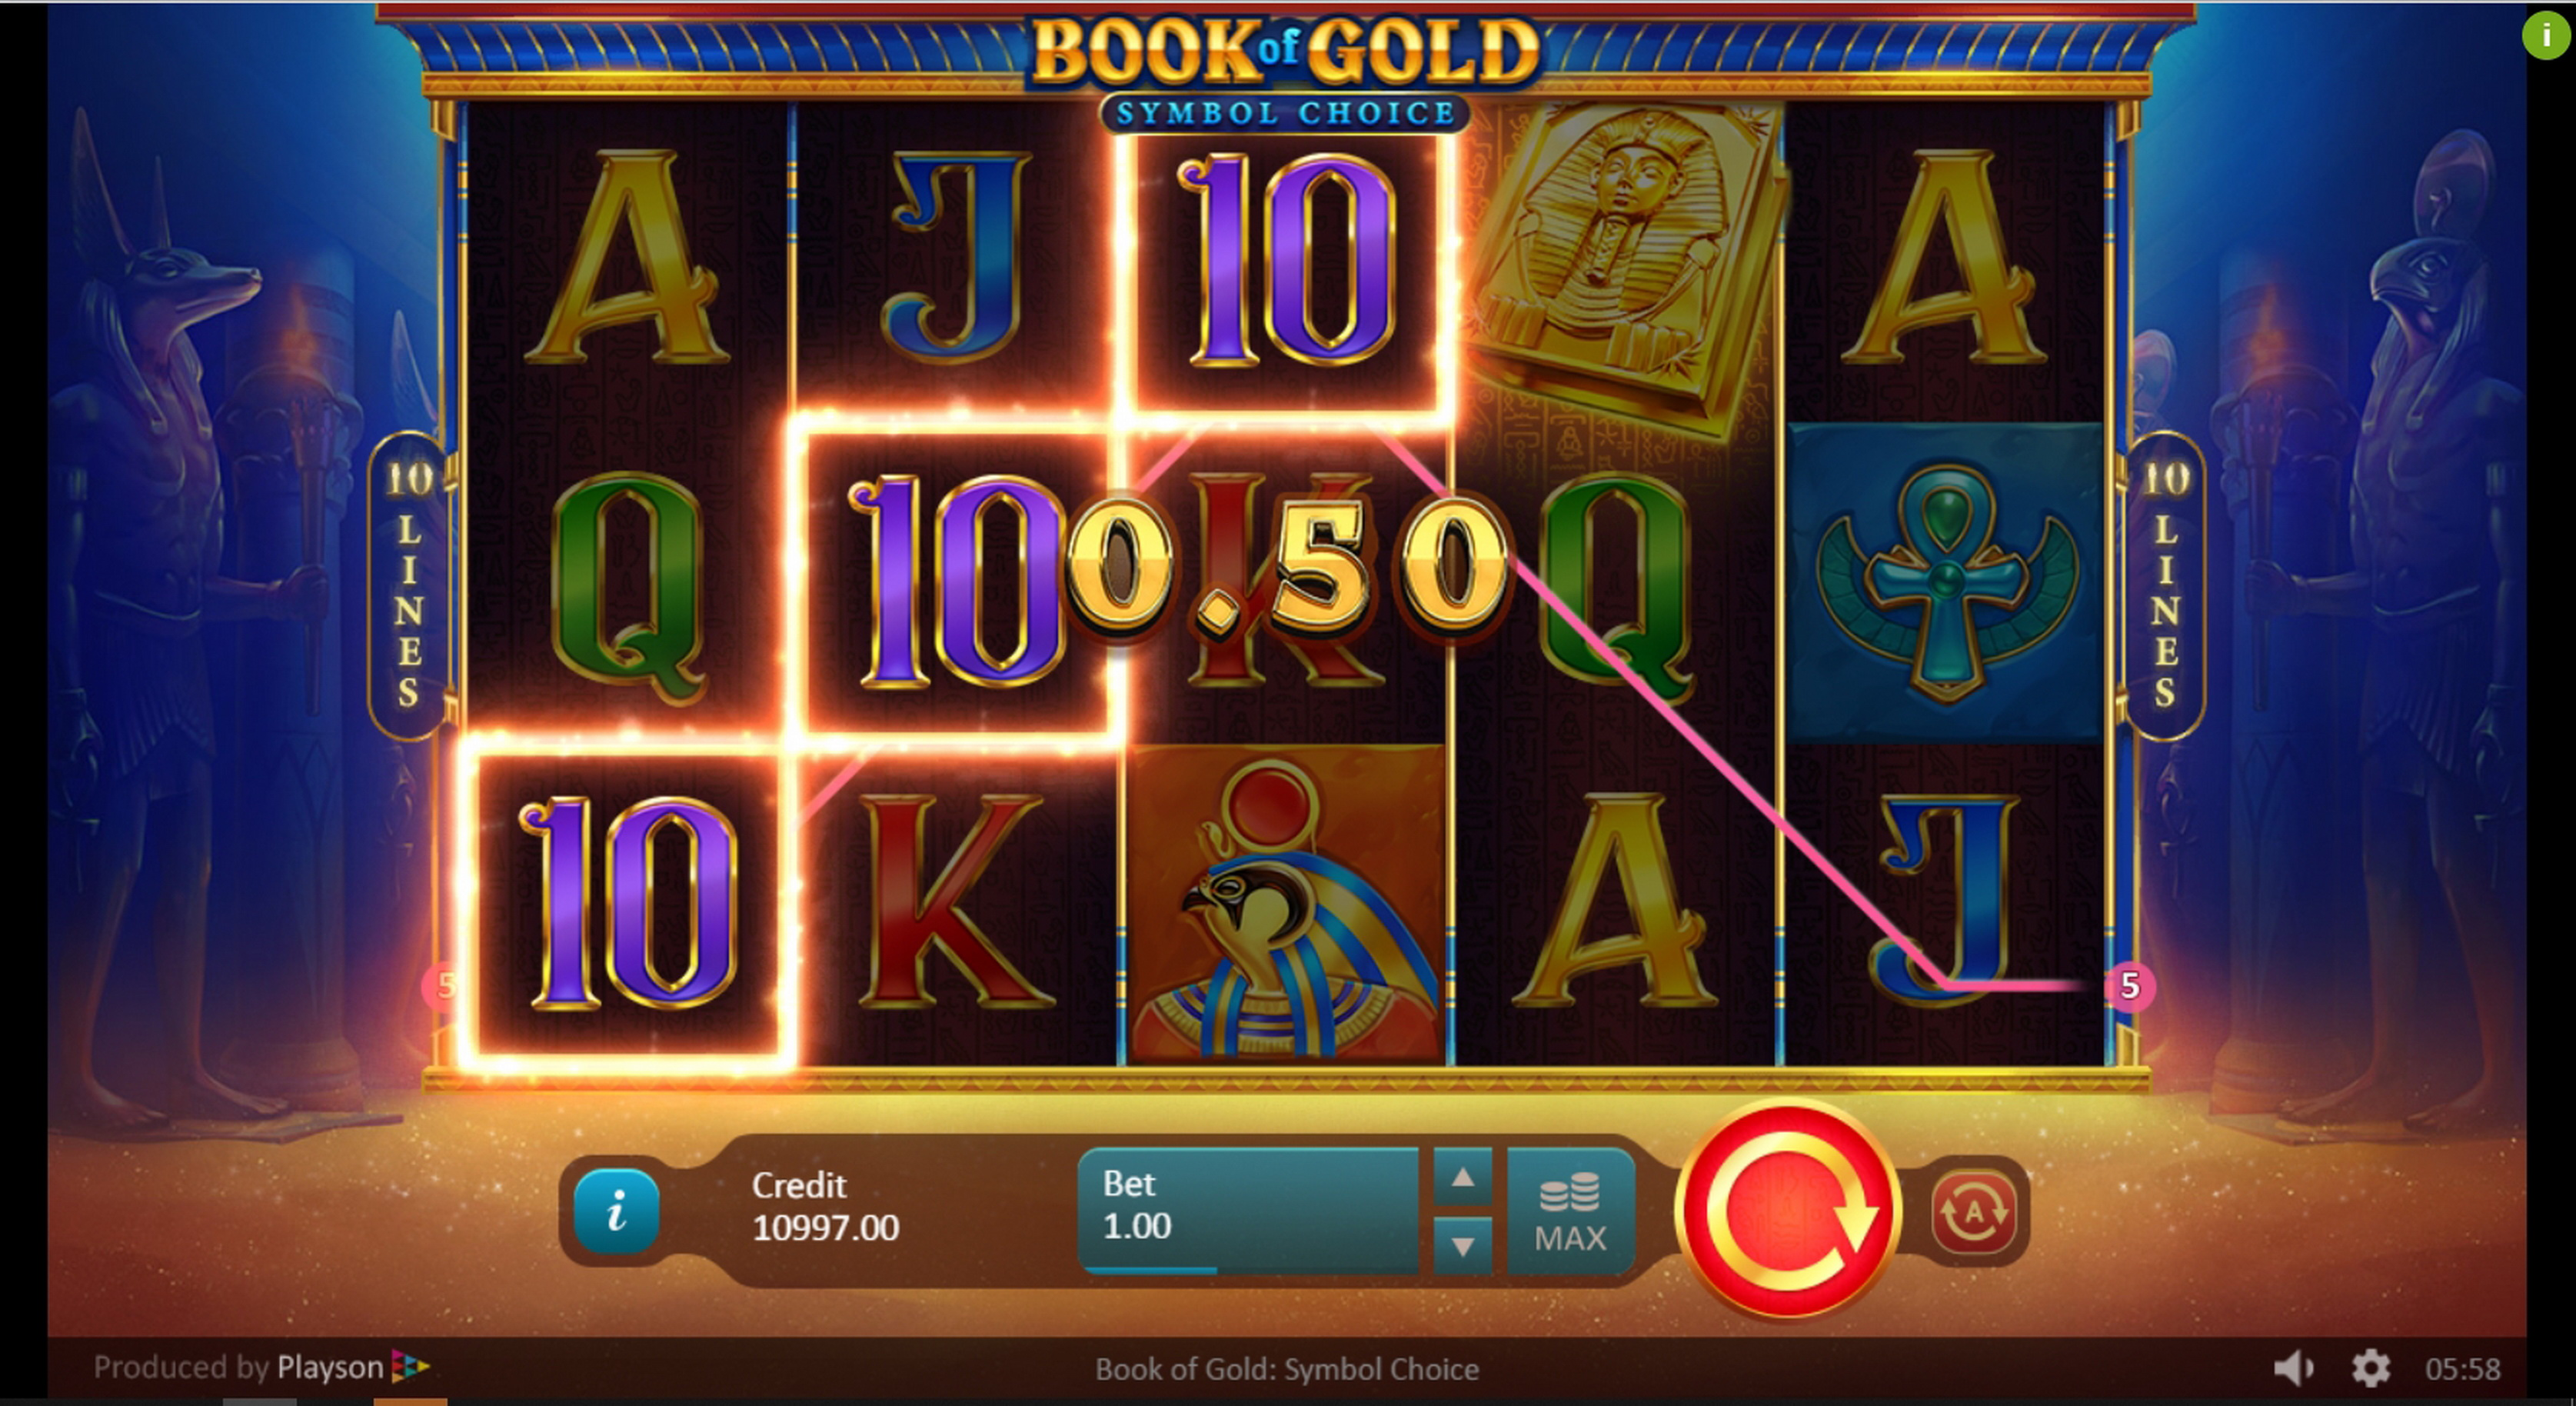 Win Money in Book of Gold: Symbol Choice Free Slot Game by Playson